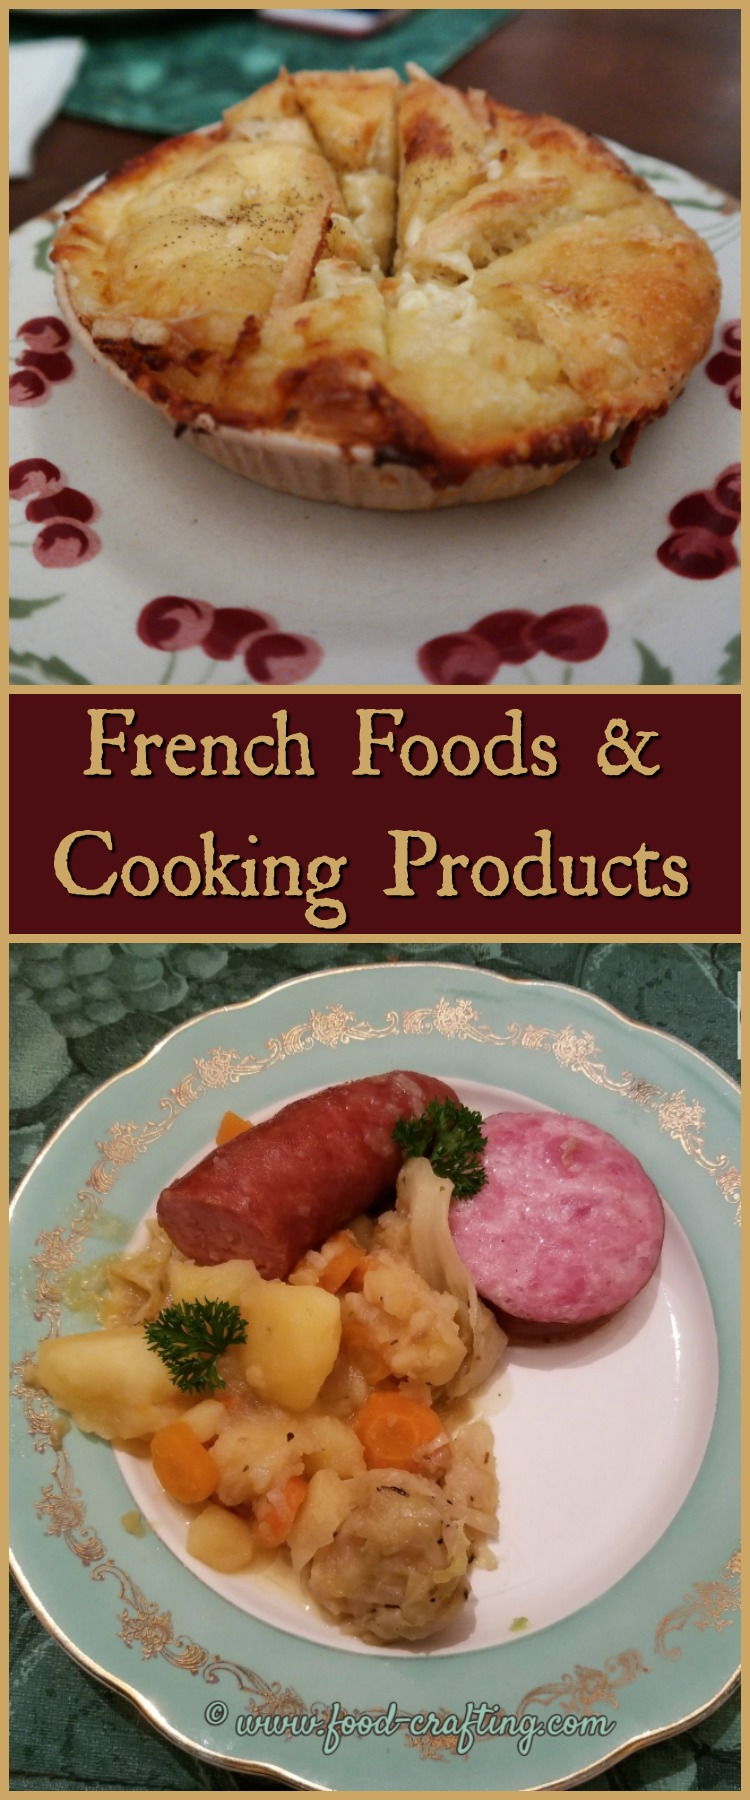 French Food Gift Ideas! I've collected the best must-have food and cooking products for your kitchen pantry. Bon app!